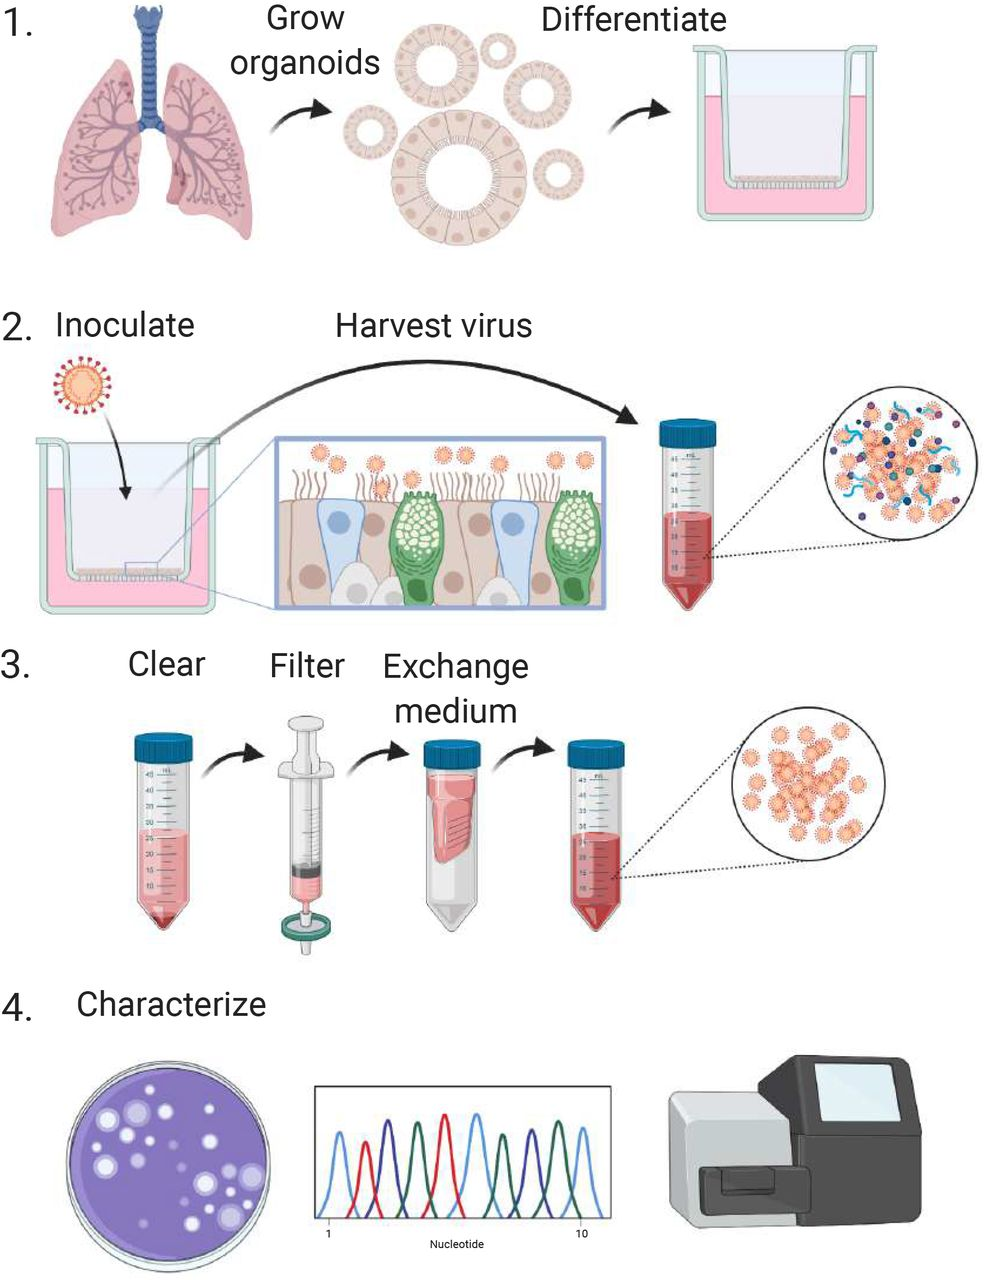 Schematic workflow for the production of SARS-CoV-2 stocks on 2D air-liquid interface differentiated airway organoids. Step 1. 3D self-renewing airway organoids are grown from human lung tissue. Next, these are dissociated to single cells and differentiated at air-liquid interface for 4-12 weeks. Step 2. Differentiated cultures are infected at a multiplicity of infection of 0.05 and washed daily for 5 days. The washes from day 2-5 are collected and stored at 4°C. Step 3. Virus collections are cleared by centrifugation and filtered to remove debris larger than 0.45 μm. Next, the medium is exchanged three times using Amicon columns to remove cytokines and debris smaller than 100 kDa. Purified virus preparations are then stored at −80°C in aliquots. Step 4. Stocks can be characterized using plaque assays, Sanger sequencing and deep-sequencing. Created with BioRender.com .